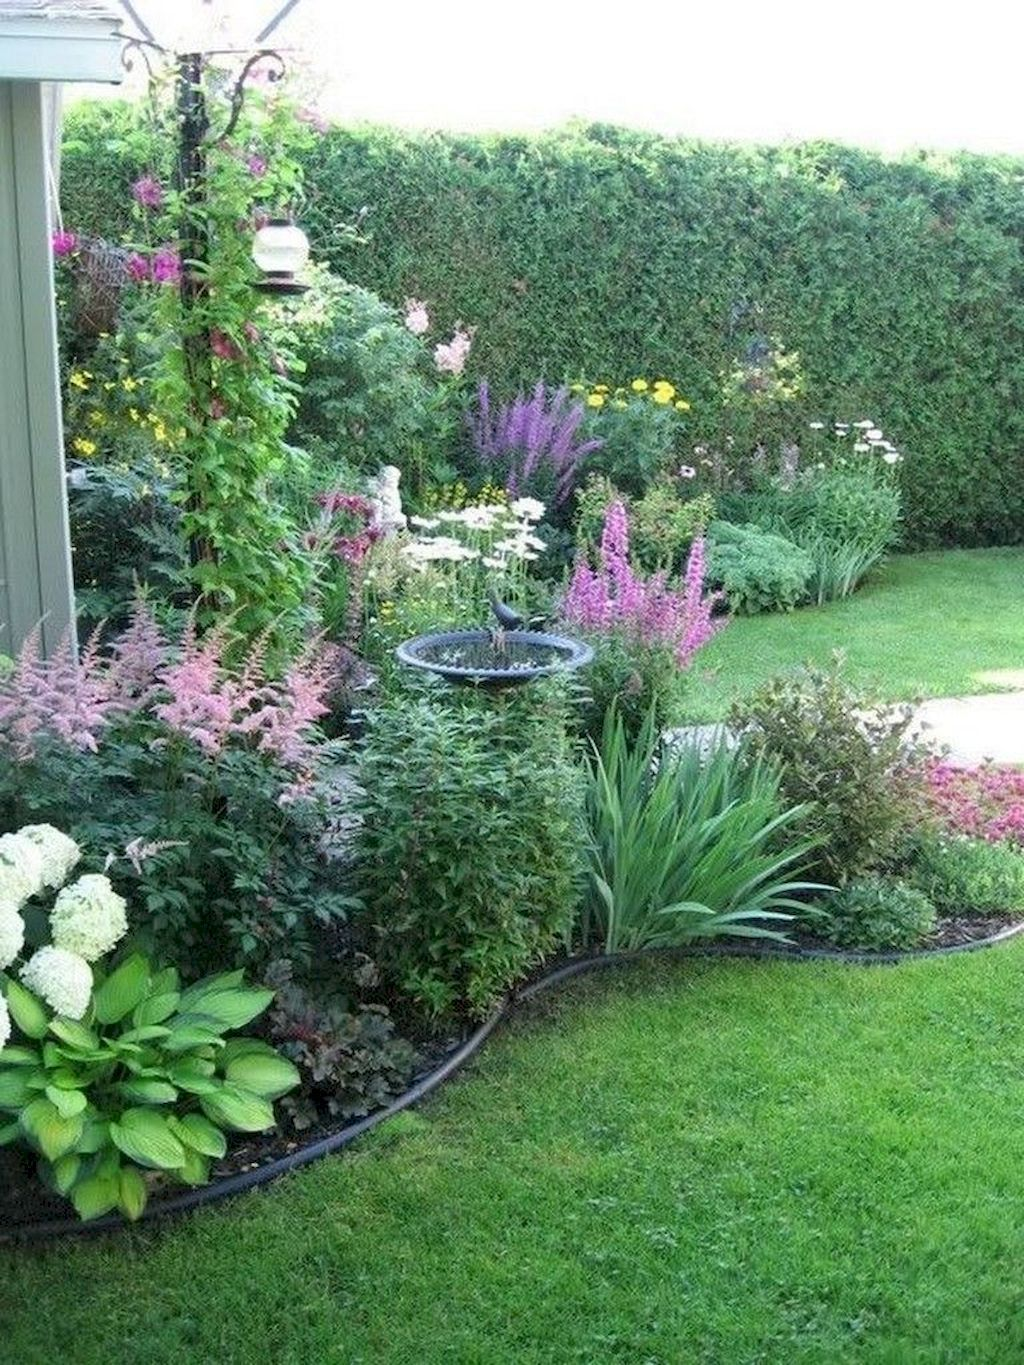 01 stunning cottage garden ideas for front yard on inspiring trends front yard landscaping ideas minimal budget id=67468